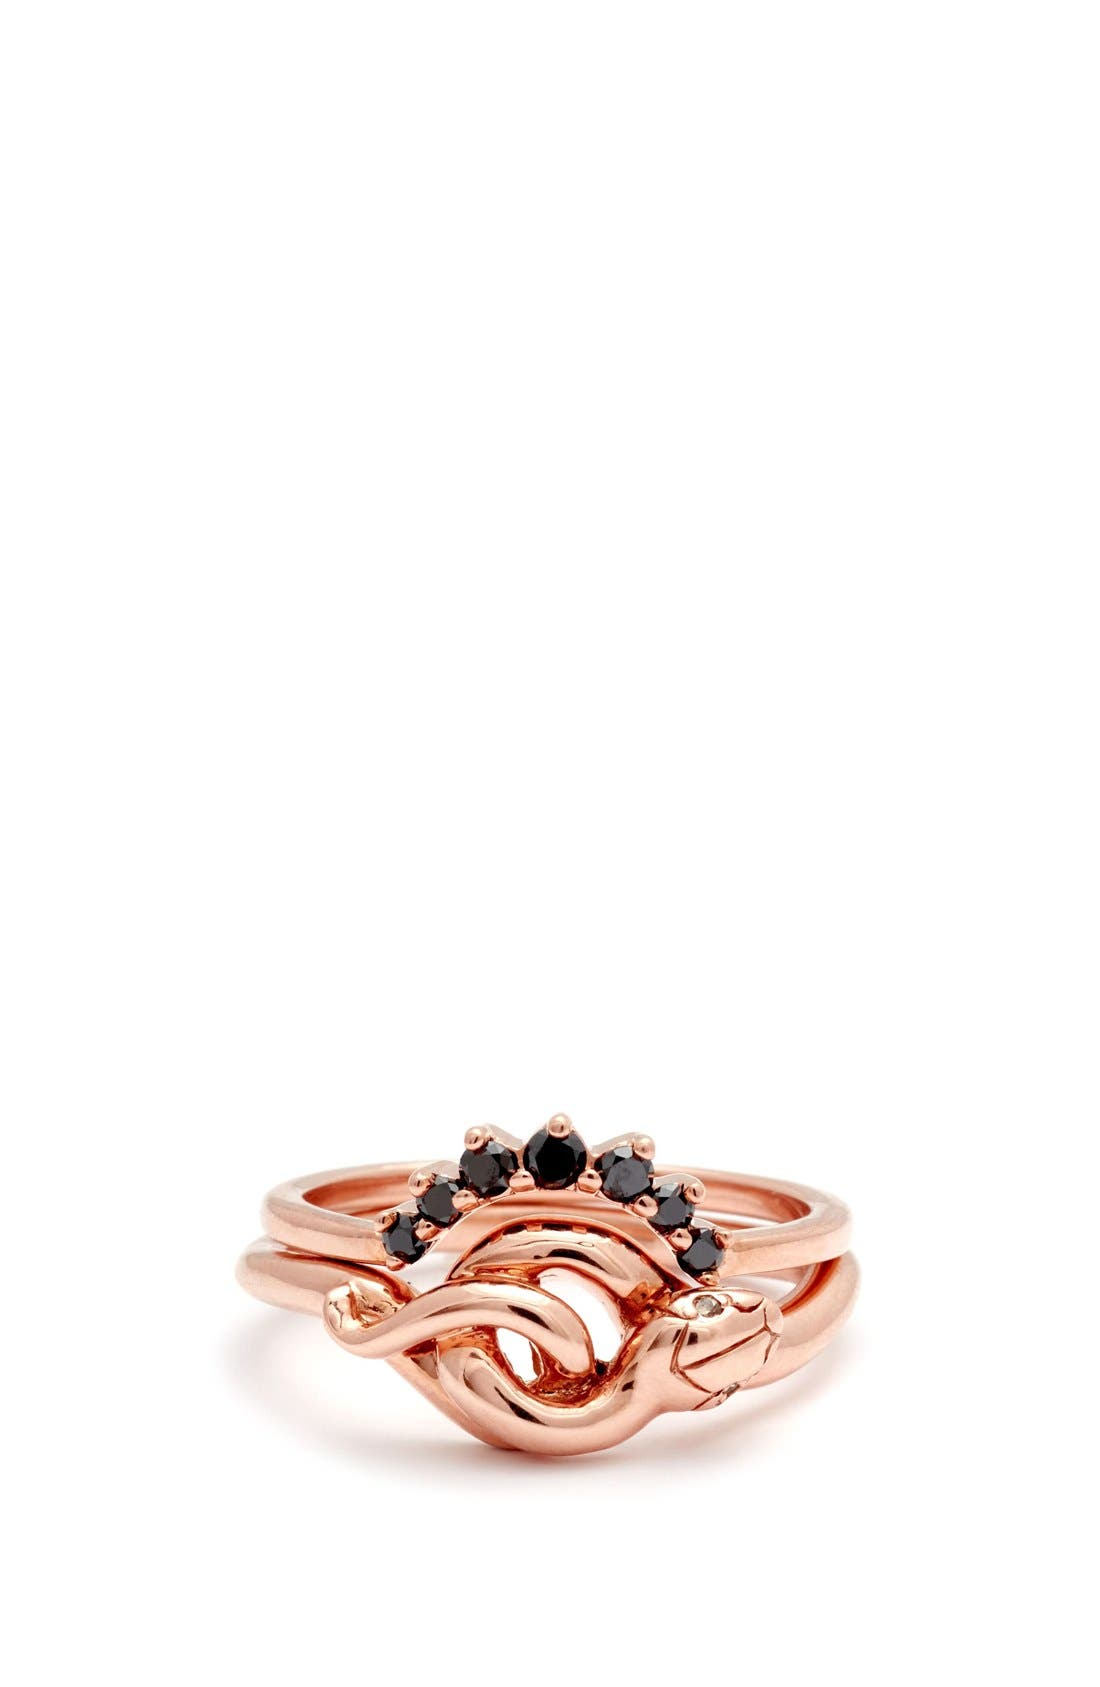 'Small Serpent' Rose Gold Ring,                             Alternate thumbnail 3, color,                             Rose/ Gold/ Champagne